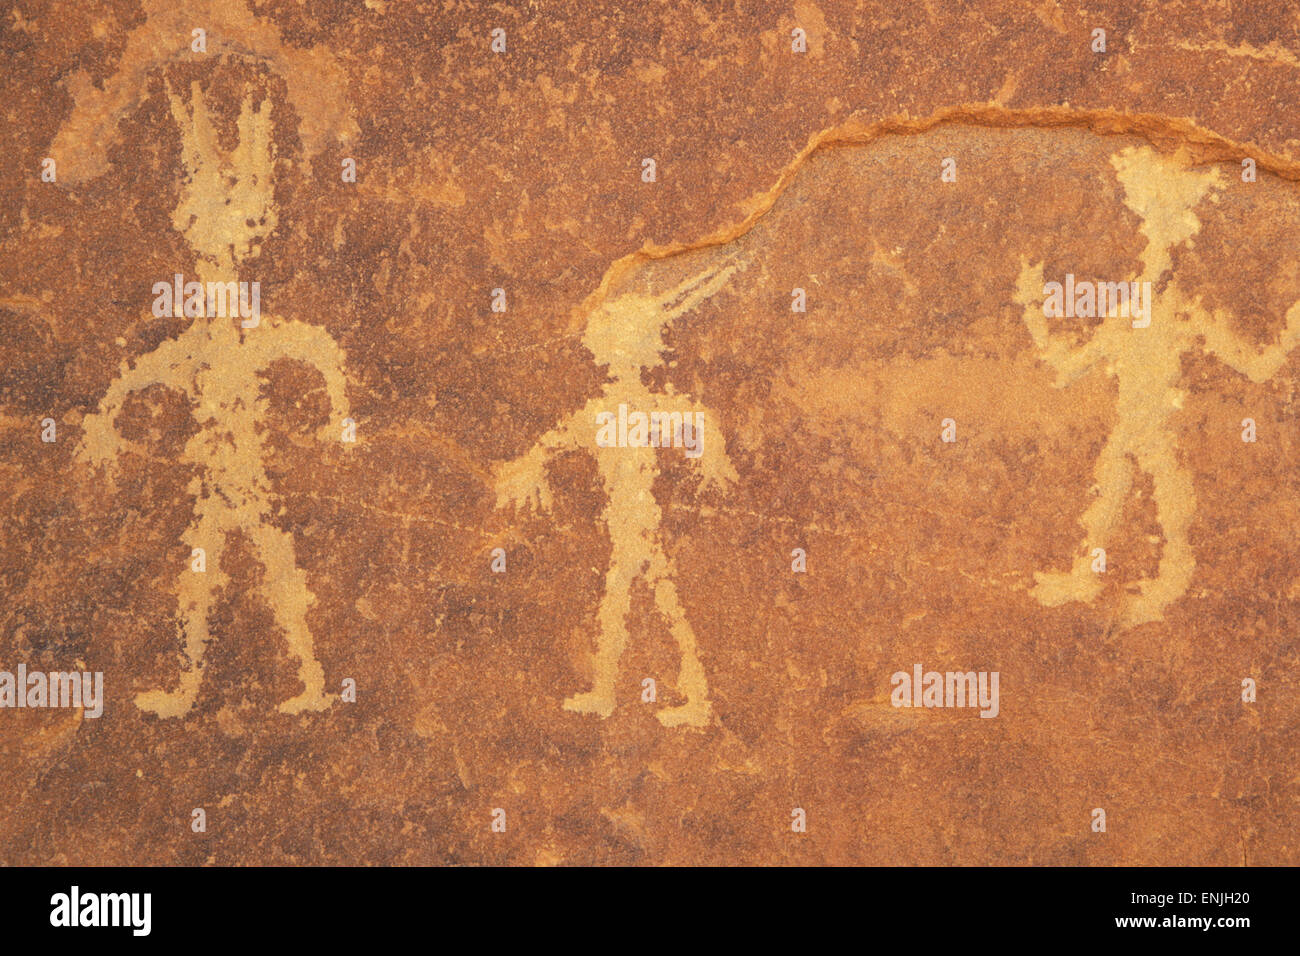 Anasazi Indian petroglyph, Chaco Culture National Historic Park, New Mexico - Stock Image